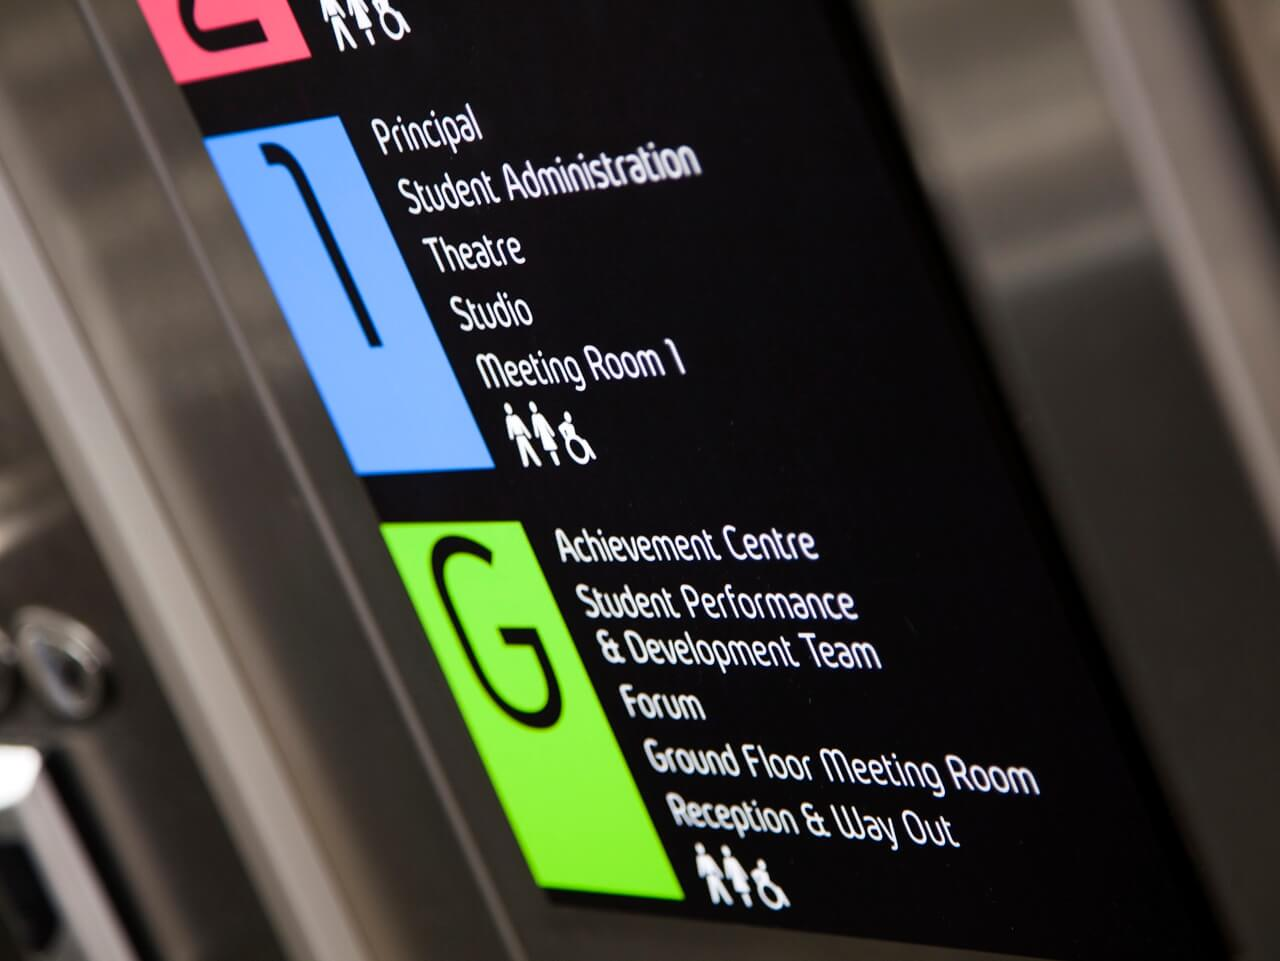 Lift signage and wayfinding with pictograms